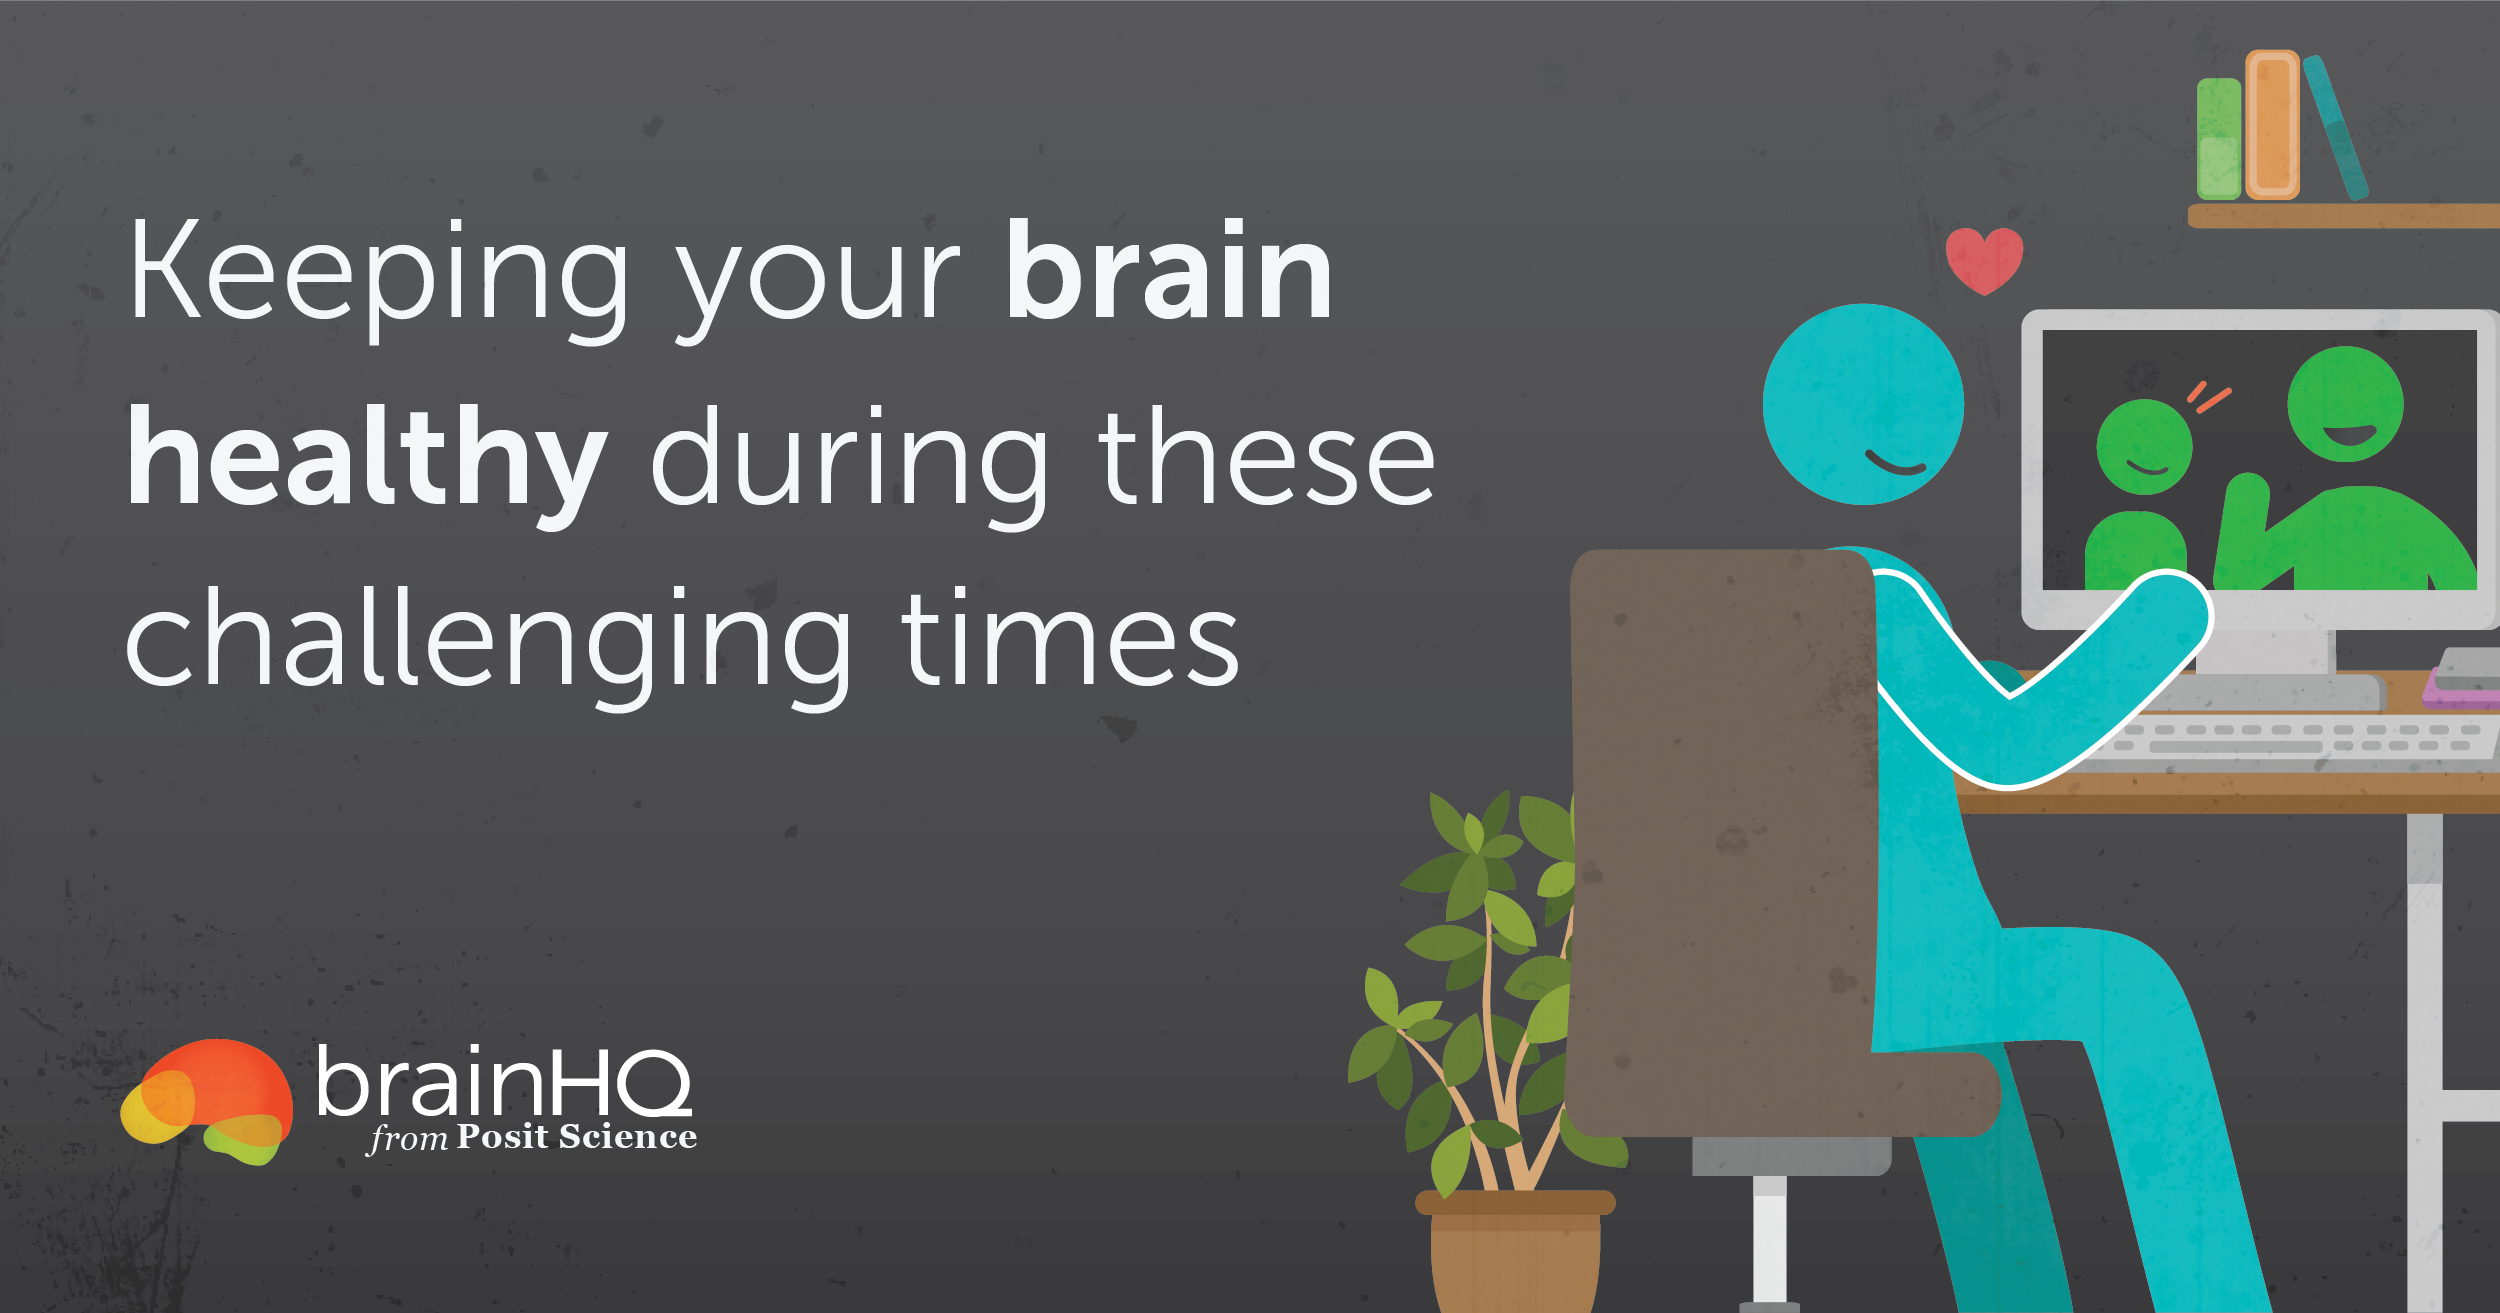 Keeping your brain healthy during these challenging times